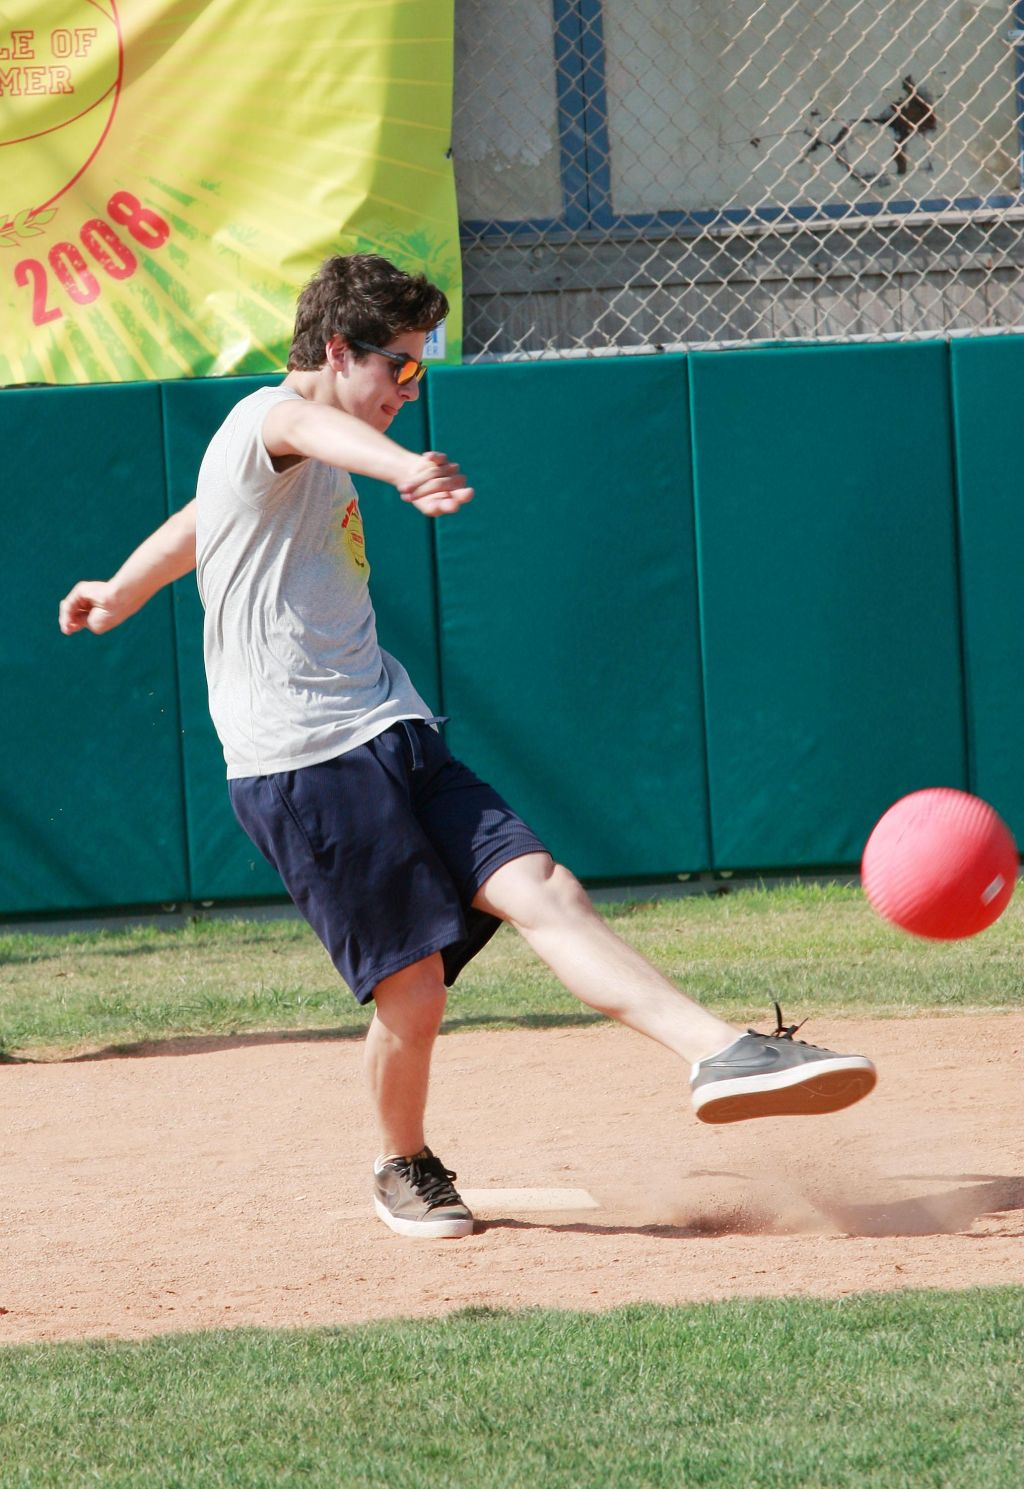 French Connection Celebrity Kickball 2008